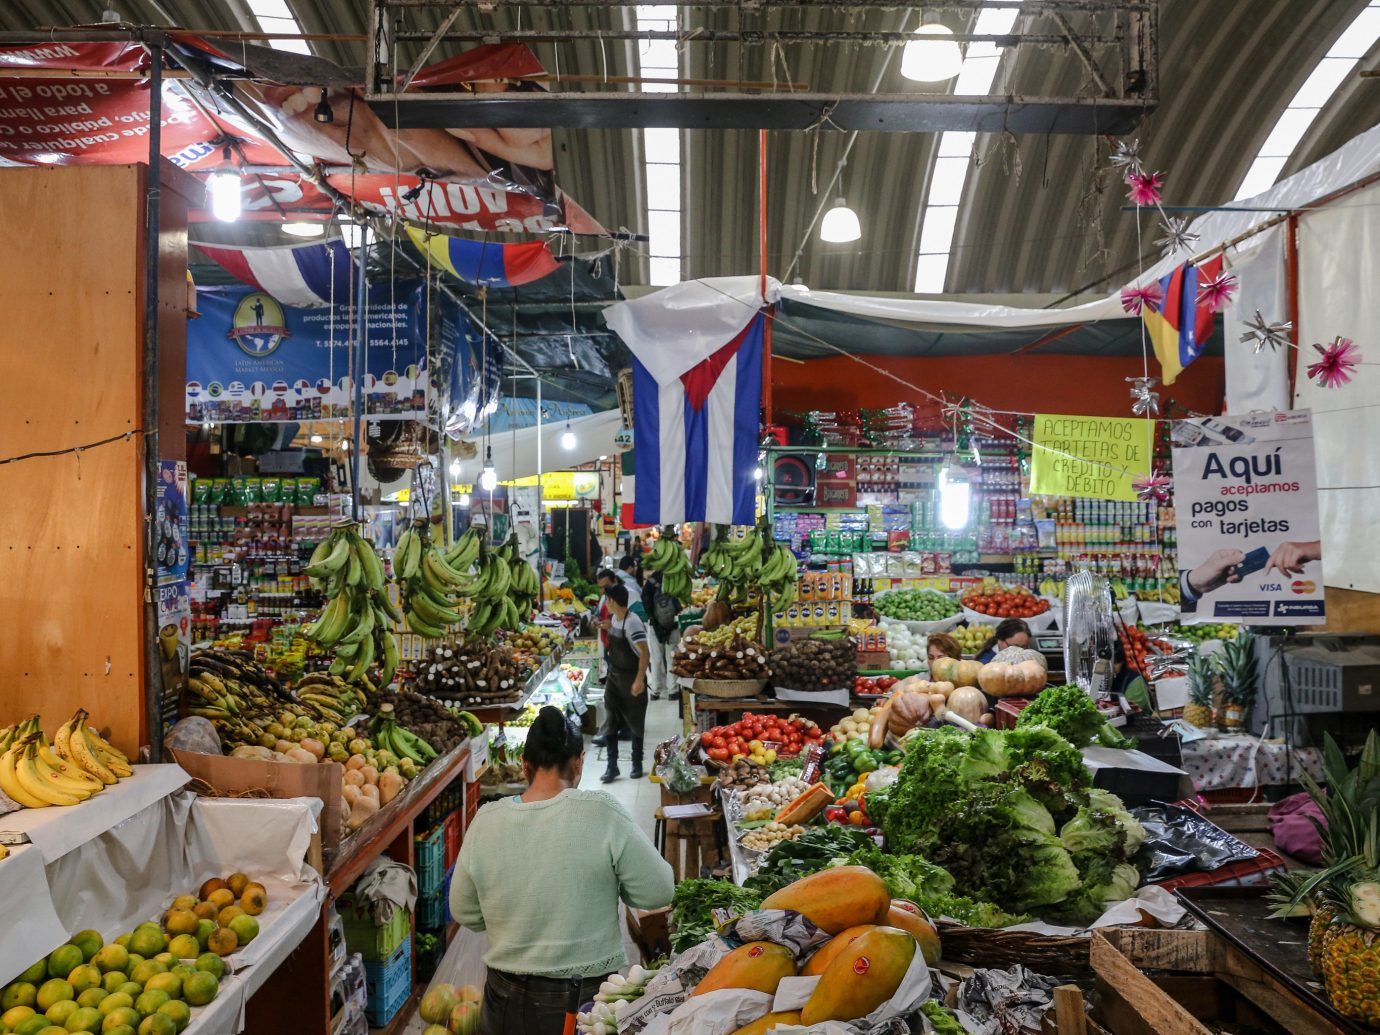 Mexico City Trip Ideas marketplace building fruit market produce vegetable public space greengrocer local food bazaar vendor stall grocery store scene whole food City fresh grocer food natural foods retail sale variety